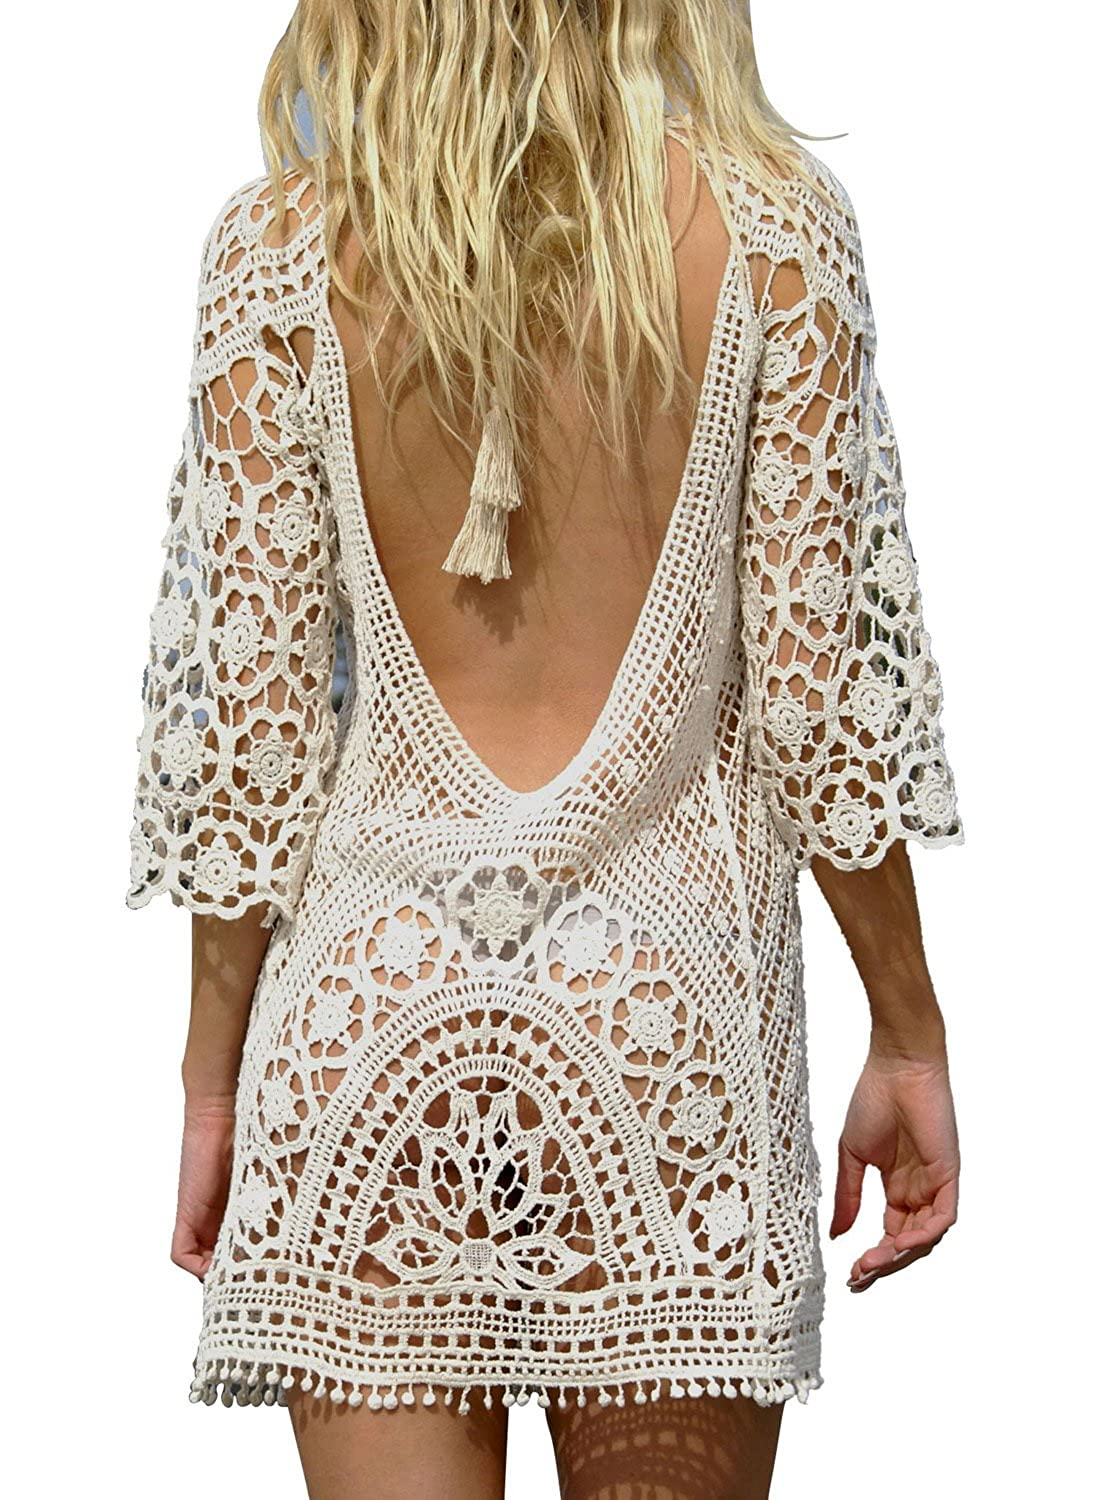 Women's Clothing Lower Price with Summer Style Women Sexy V-neck Transparent See-through Loose Beachwear Bikini Smock Sunscreen Blouse Tops Beautiful And Charming